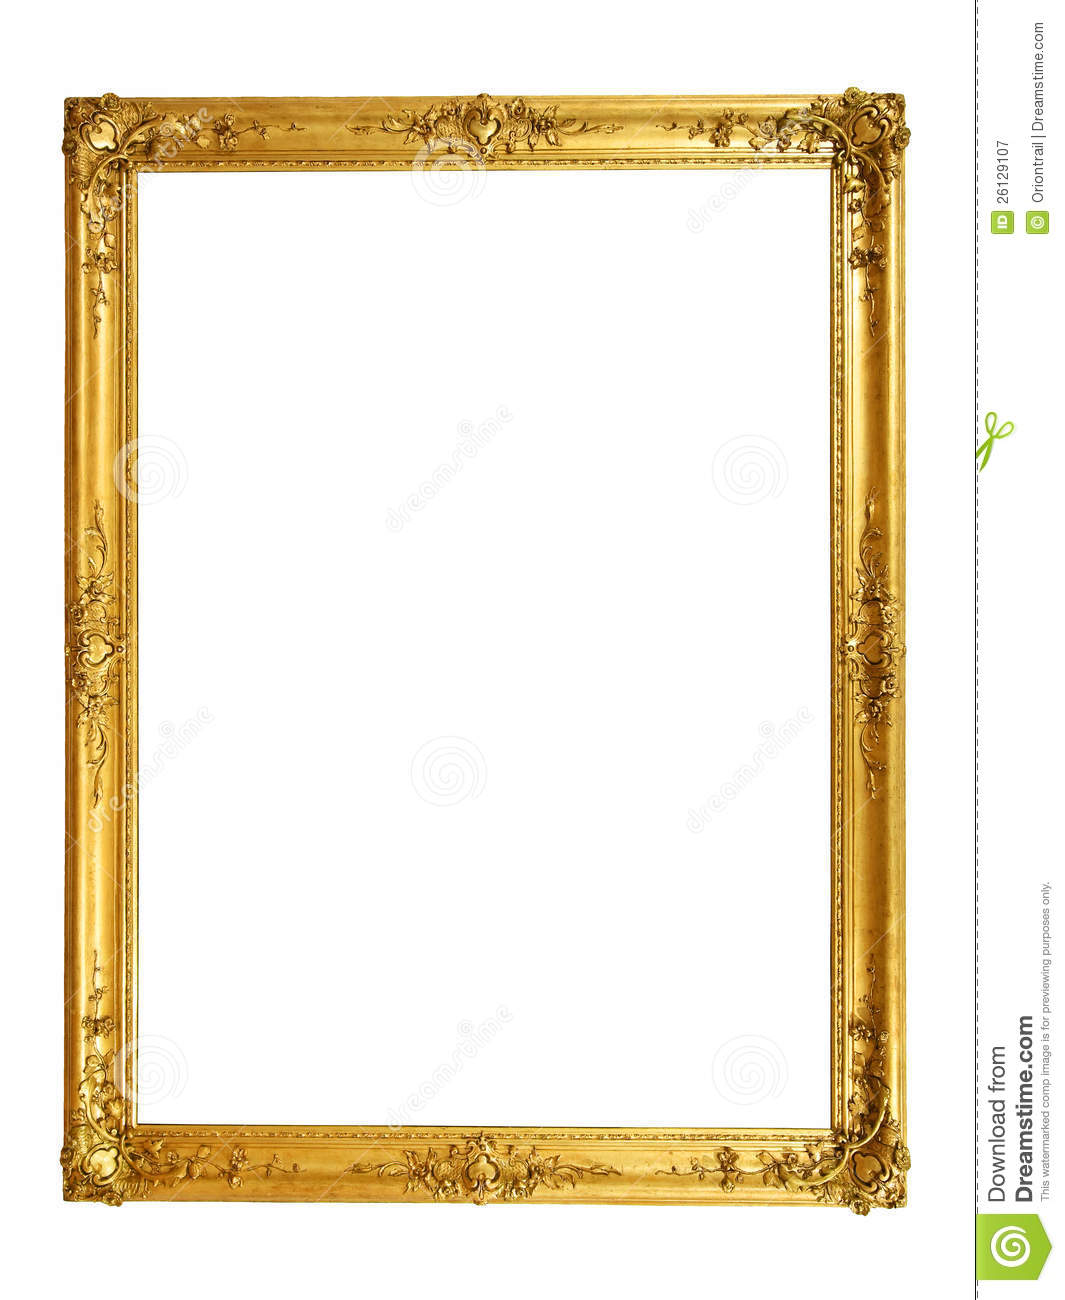 Vintage Golden Frame Royalty Free Stock Photography  Image: 26129107